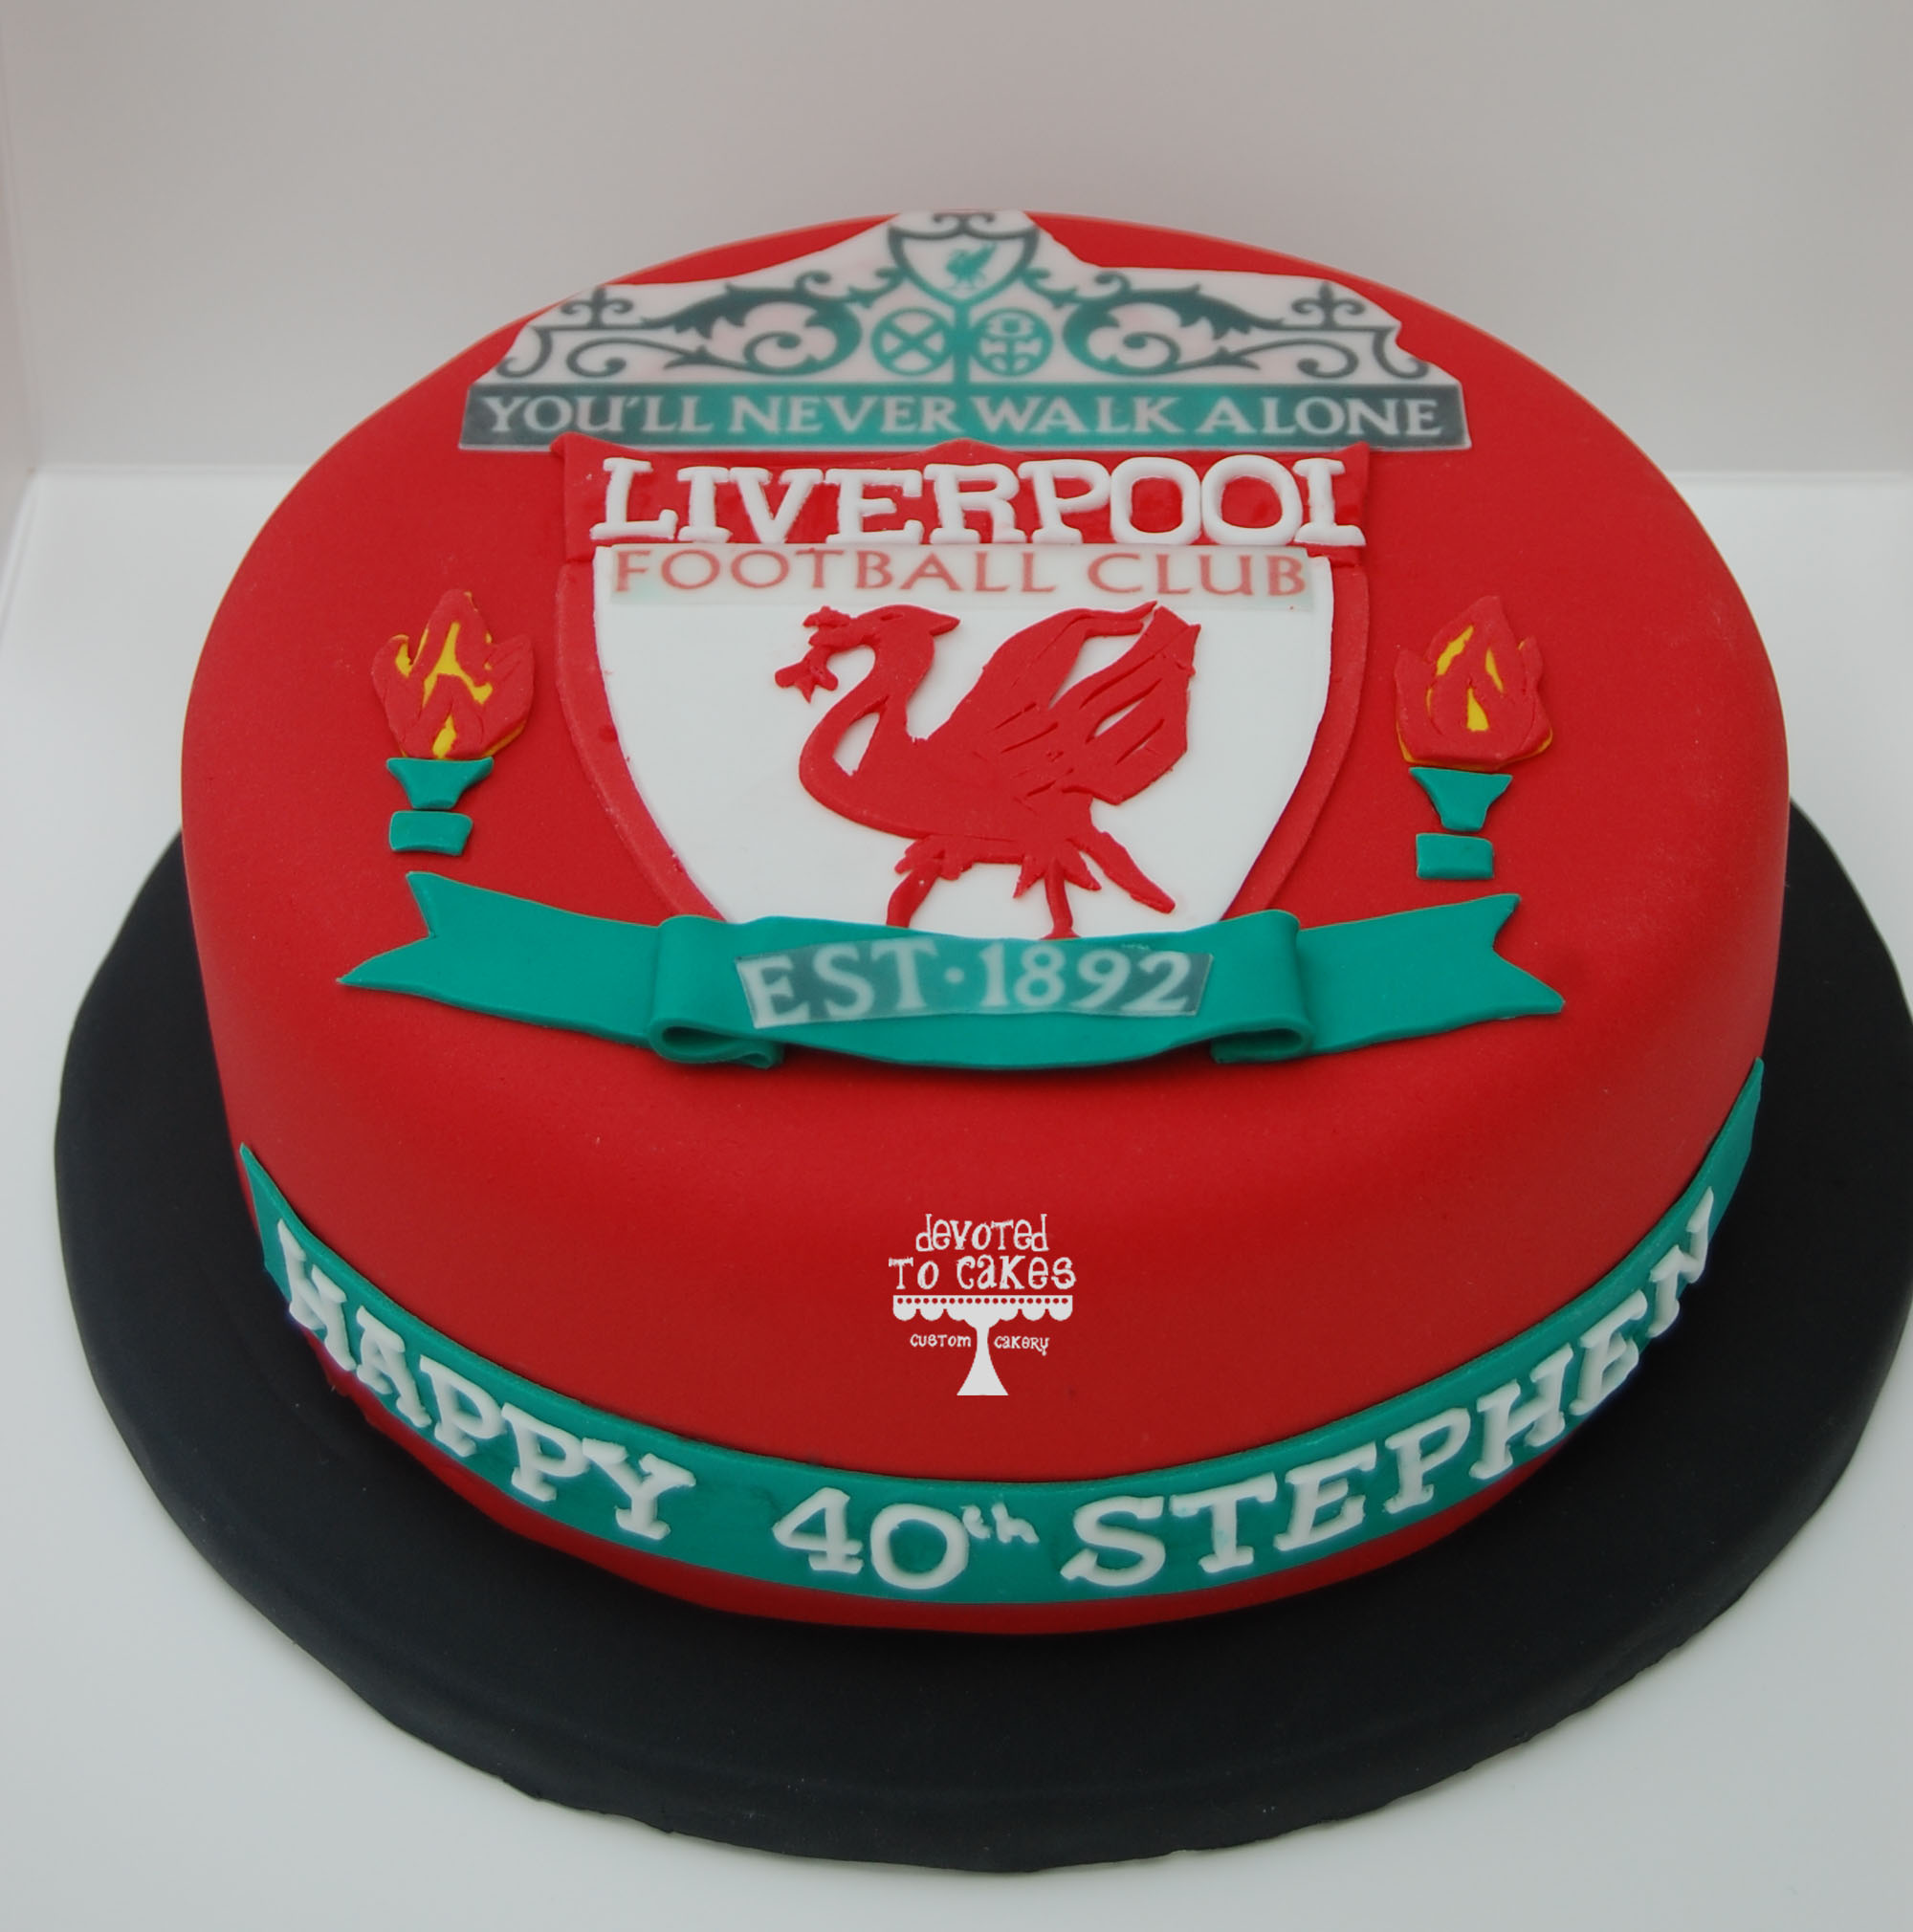 Liverpool Cakes Cake Ideas And Designs